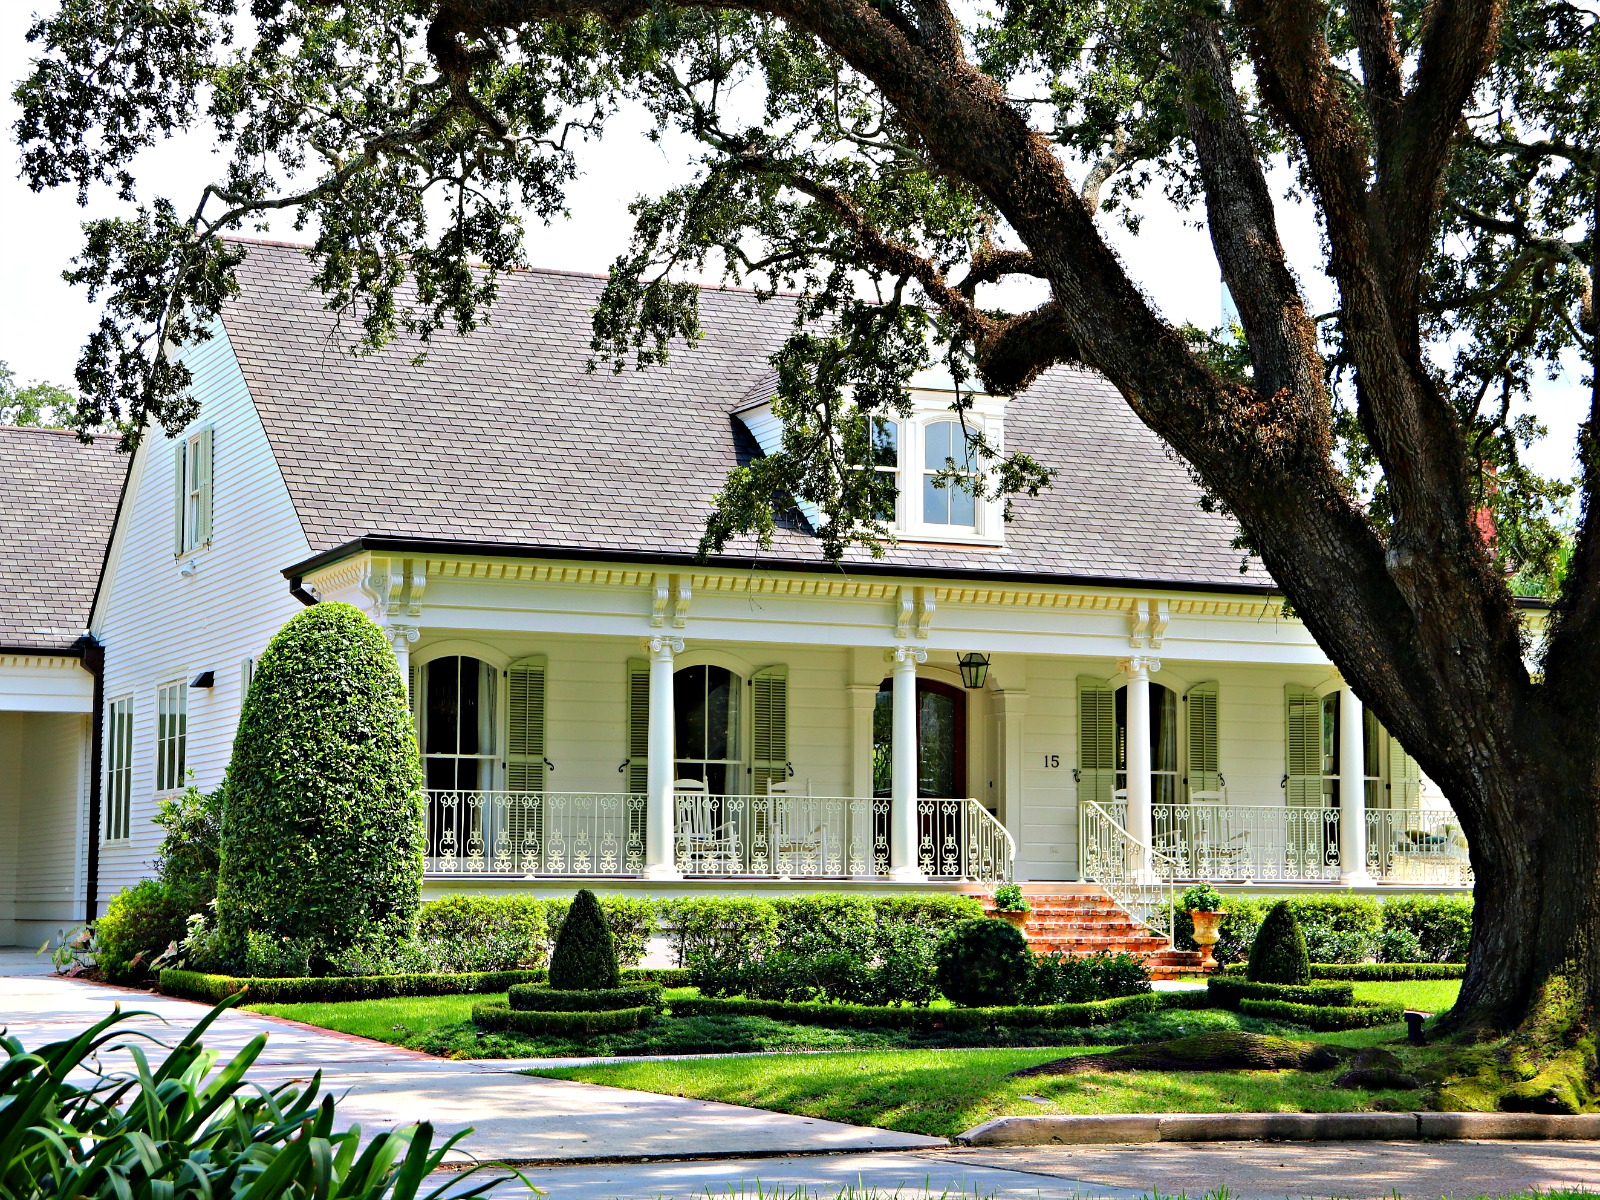 Old Metairie has many different designs of Homes